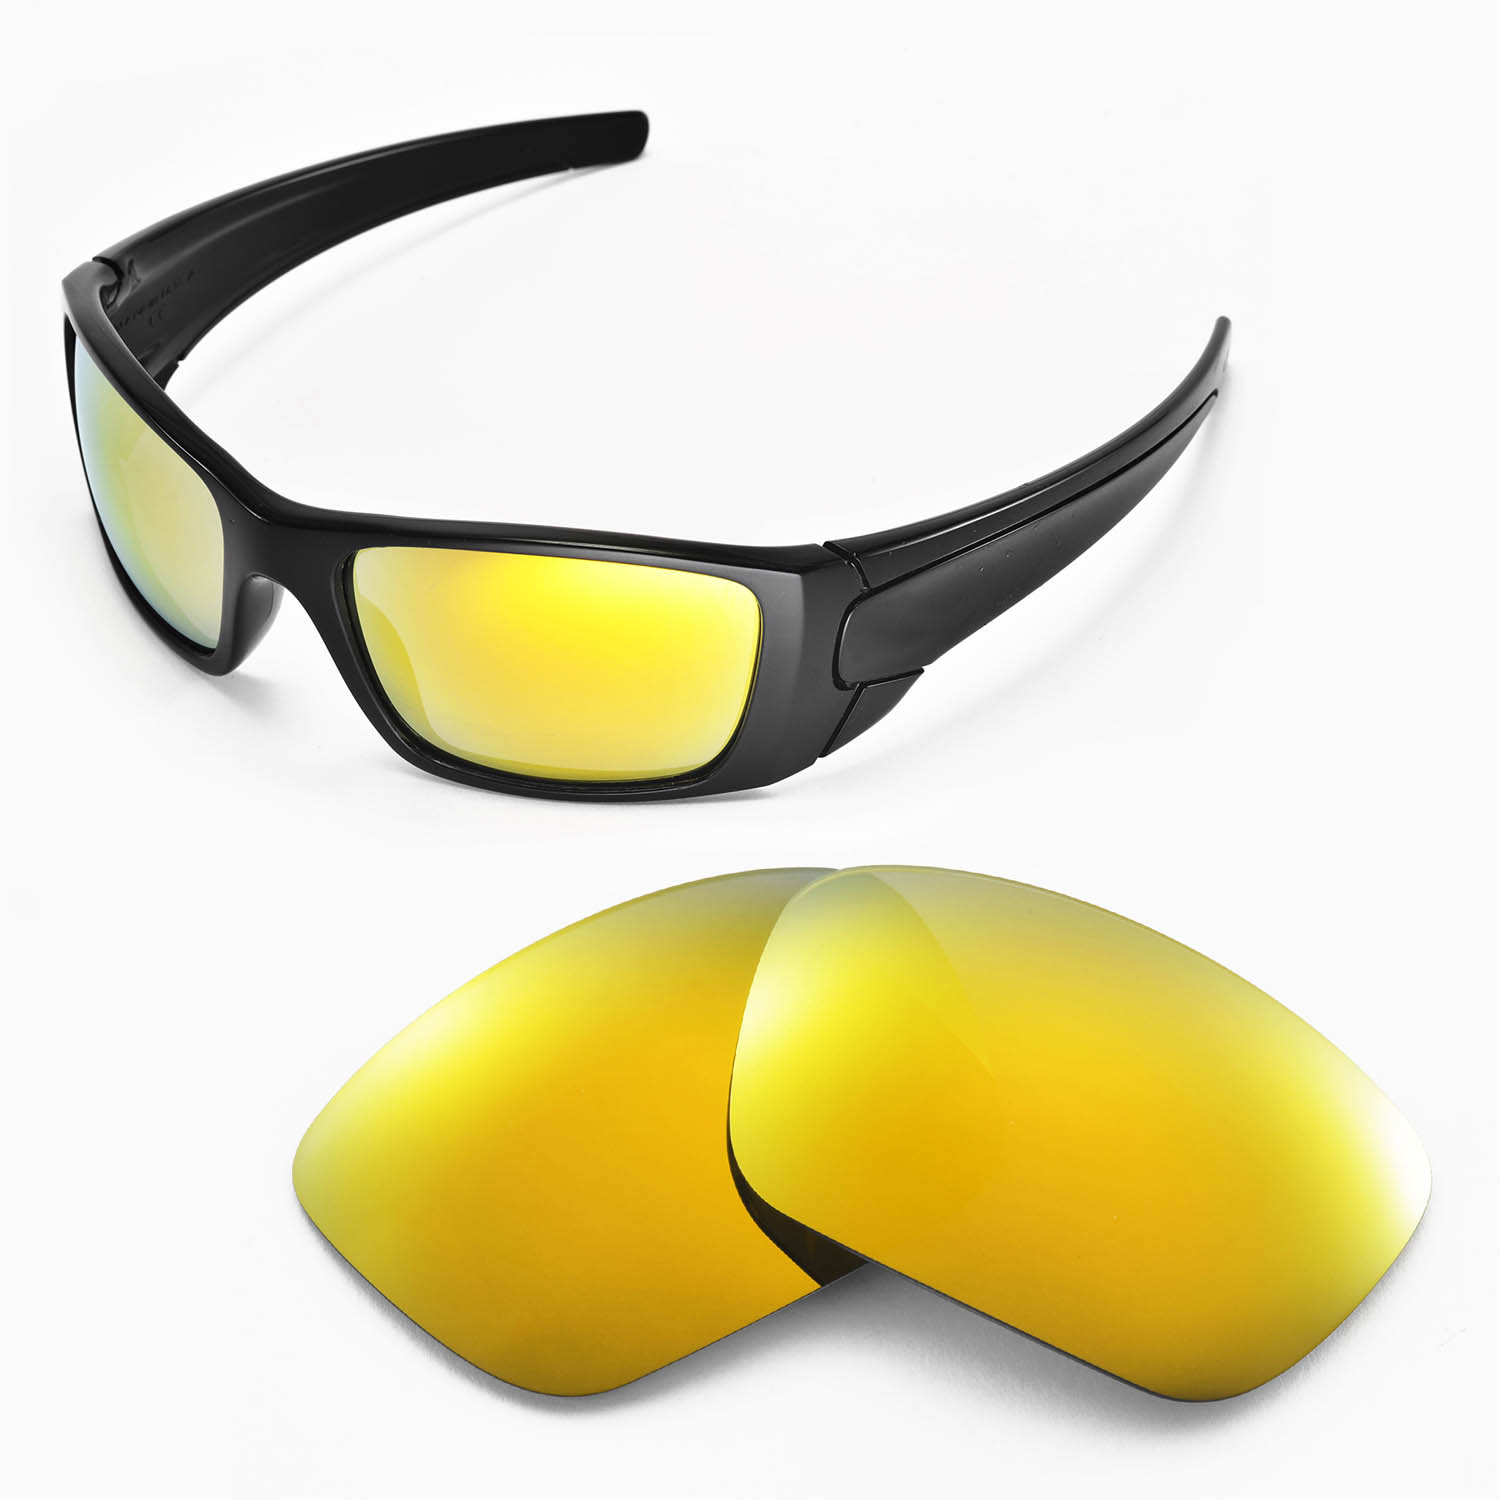 92b773ac7f Details about Walleva Replacement Lenses for Oakley Fuel Cell Sunglasses -  Multiple Options